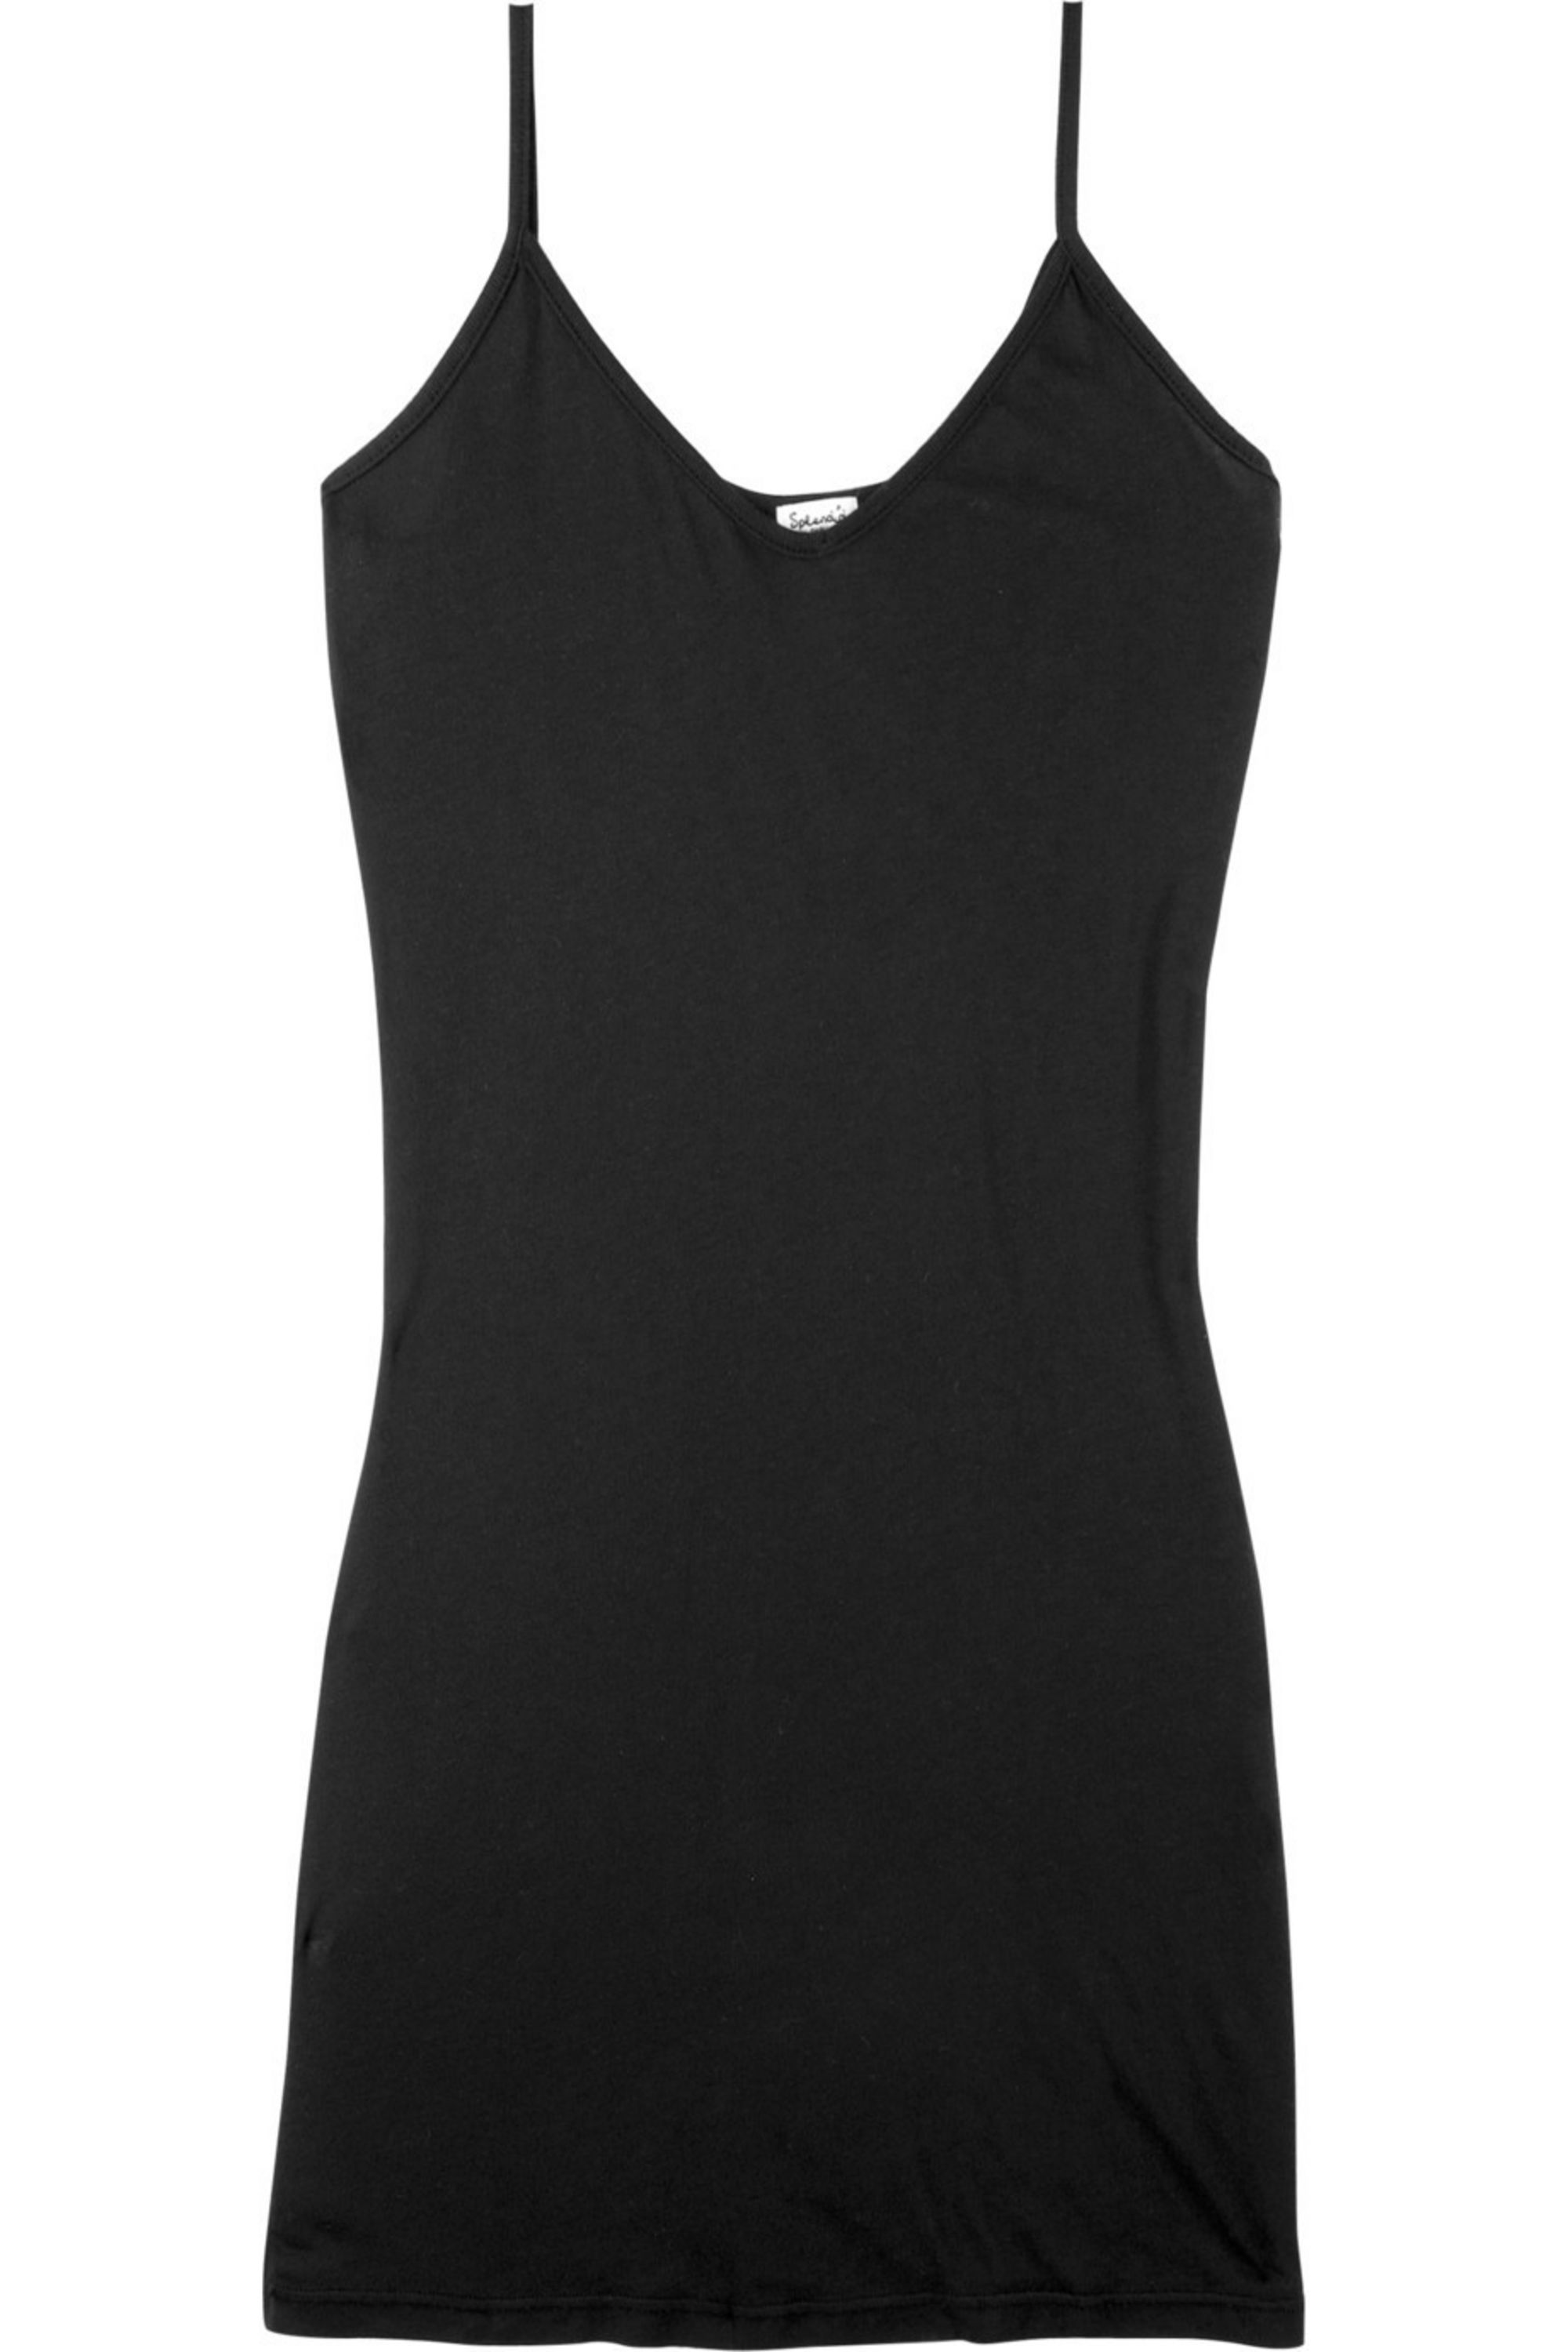 Splendid Cotton and modal-blend camisole